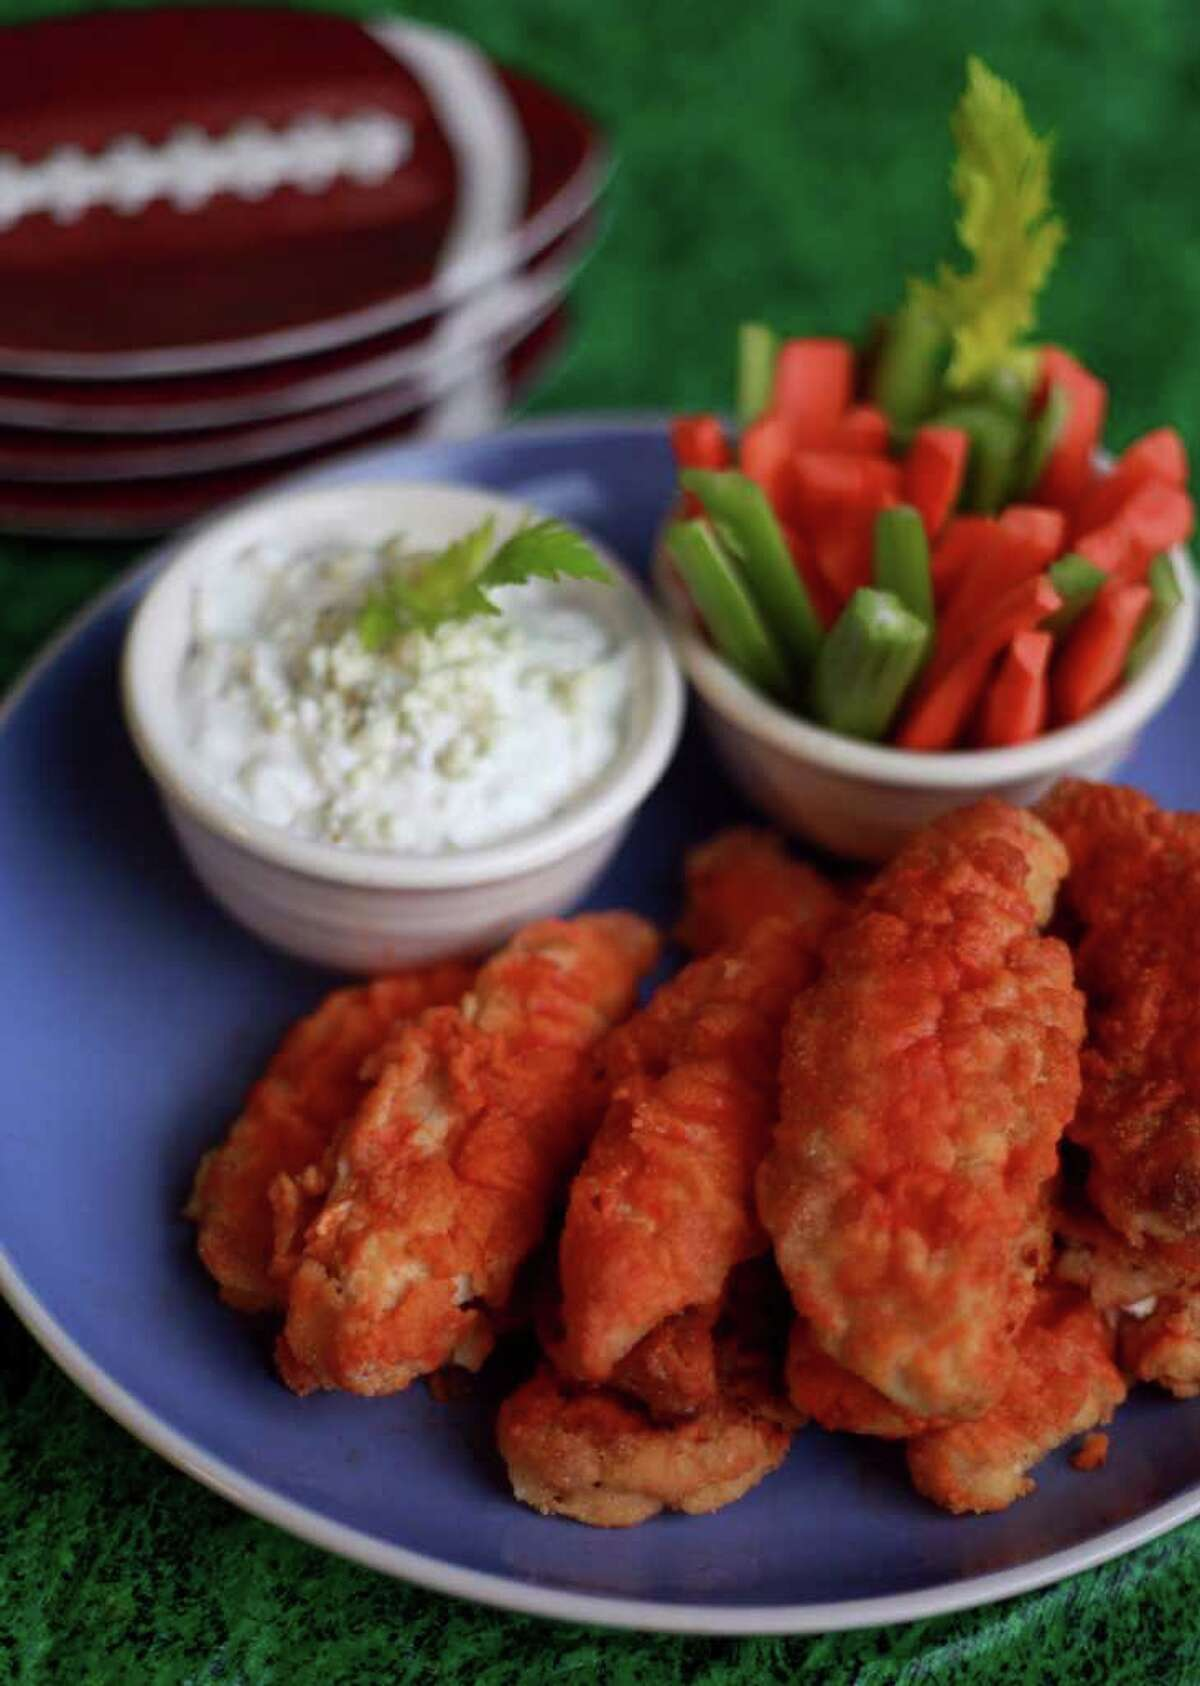 Baking chicken wings makes them a healthier snack but it is still the fattiest part of the chicken, so also substitute lower fat dips for a healtheir party snack. (Regina H. Boone/Detroit Free Press/MCT)